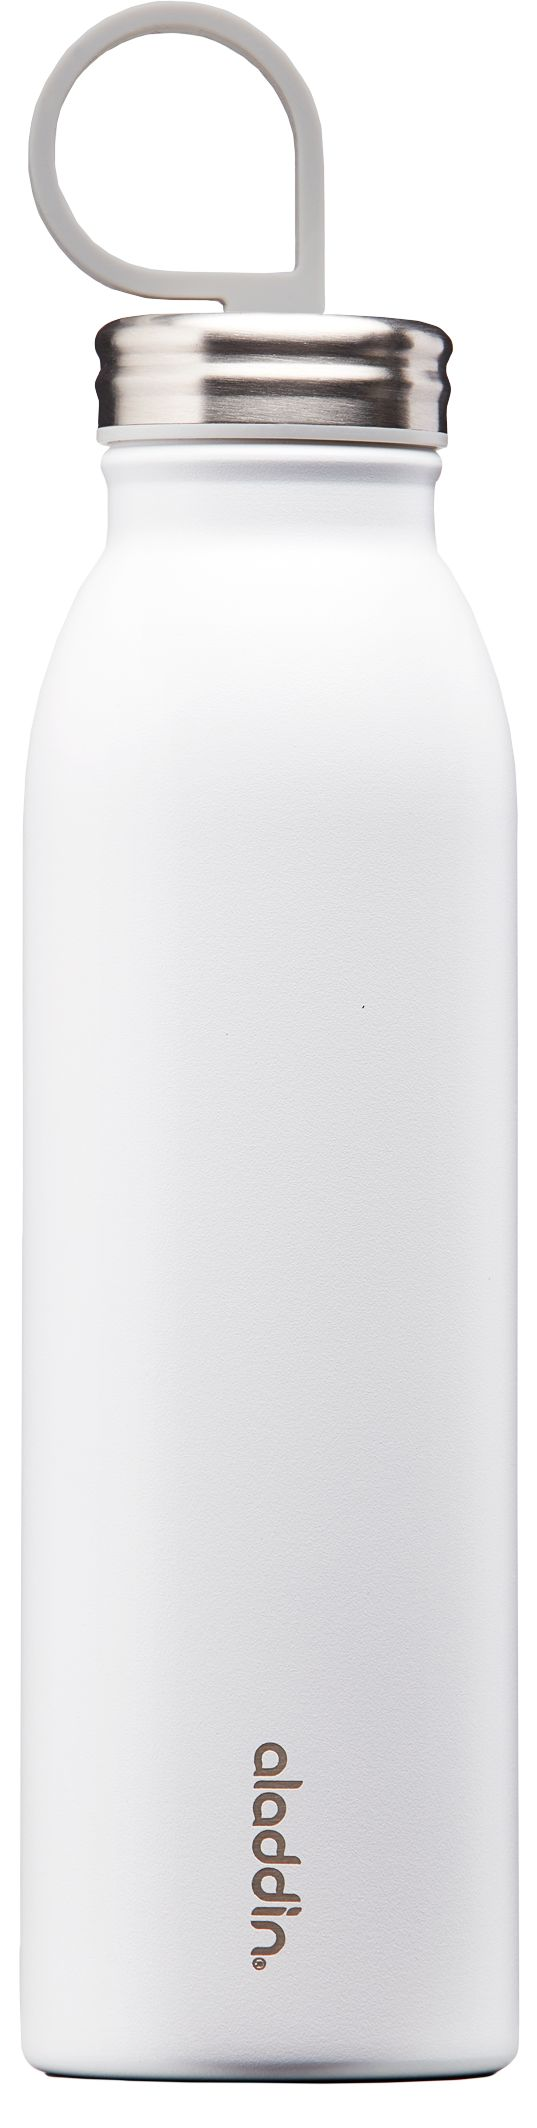 Aladdin Thermavac Chilled 550 ml witte thermosbeker